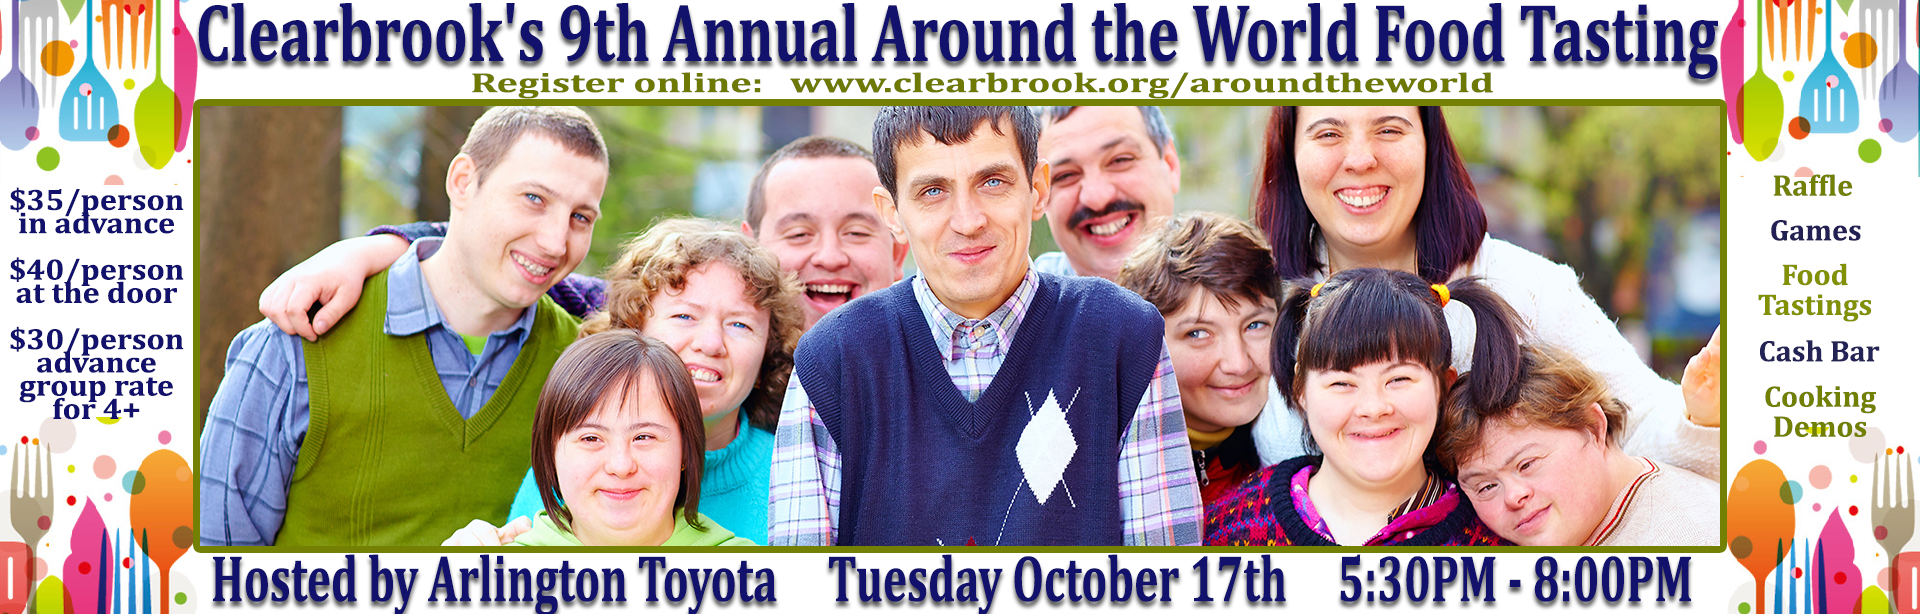 Clearbrook's 9th Annual Around the World Food Tasting at Arlington Toyota_d